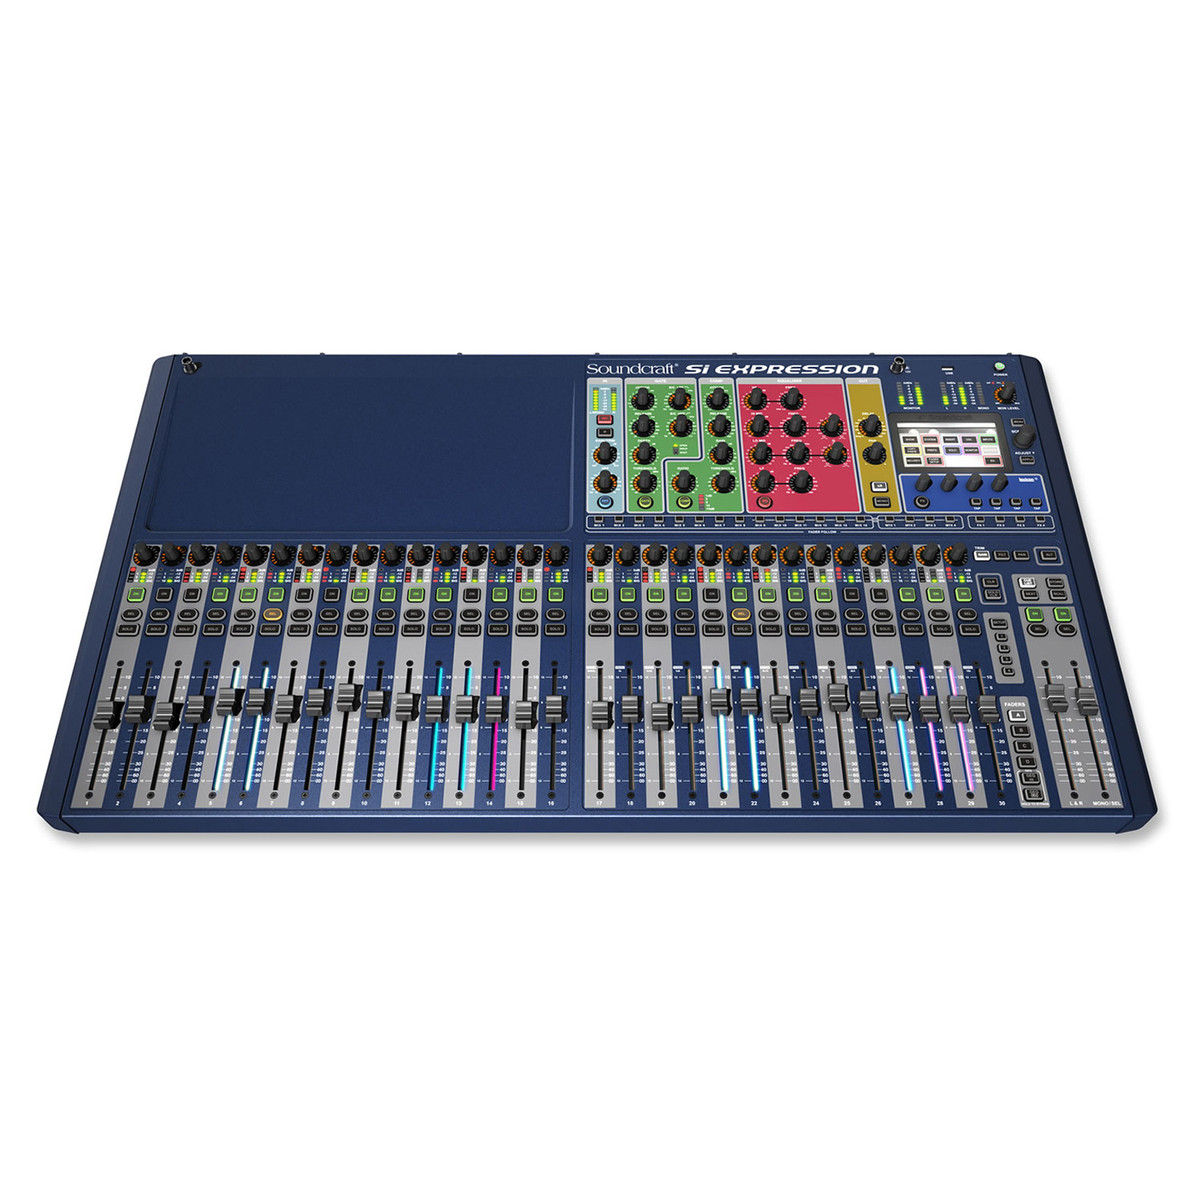 Soundcraft Si Performer 3 32 Channel Sound Mixer ref 2 Cameras & Photo Video Production & Editing